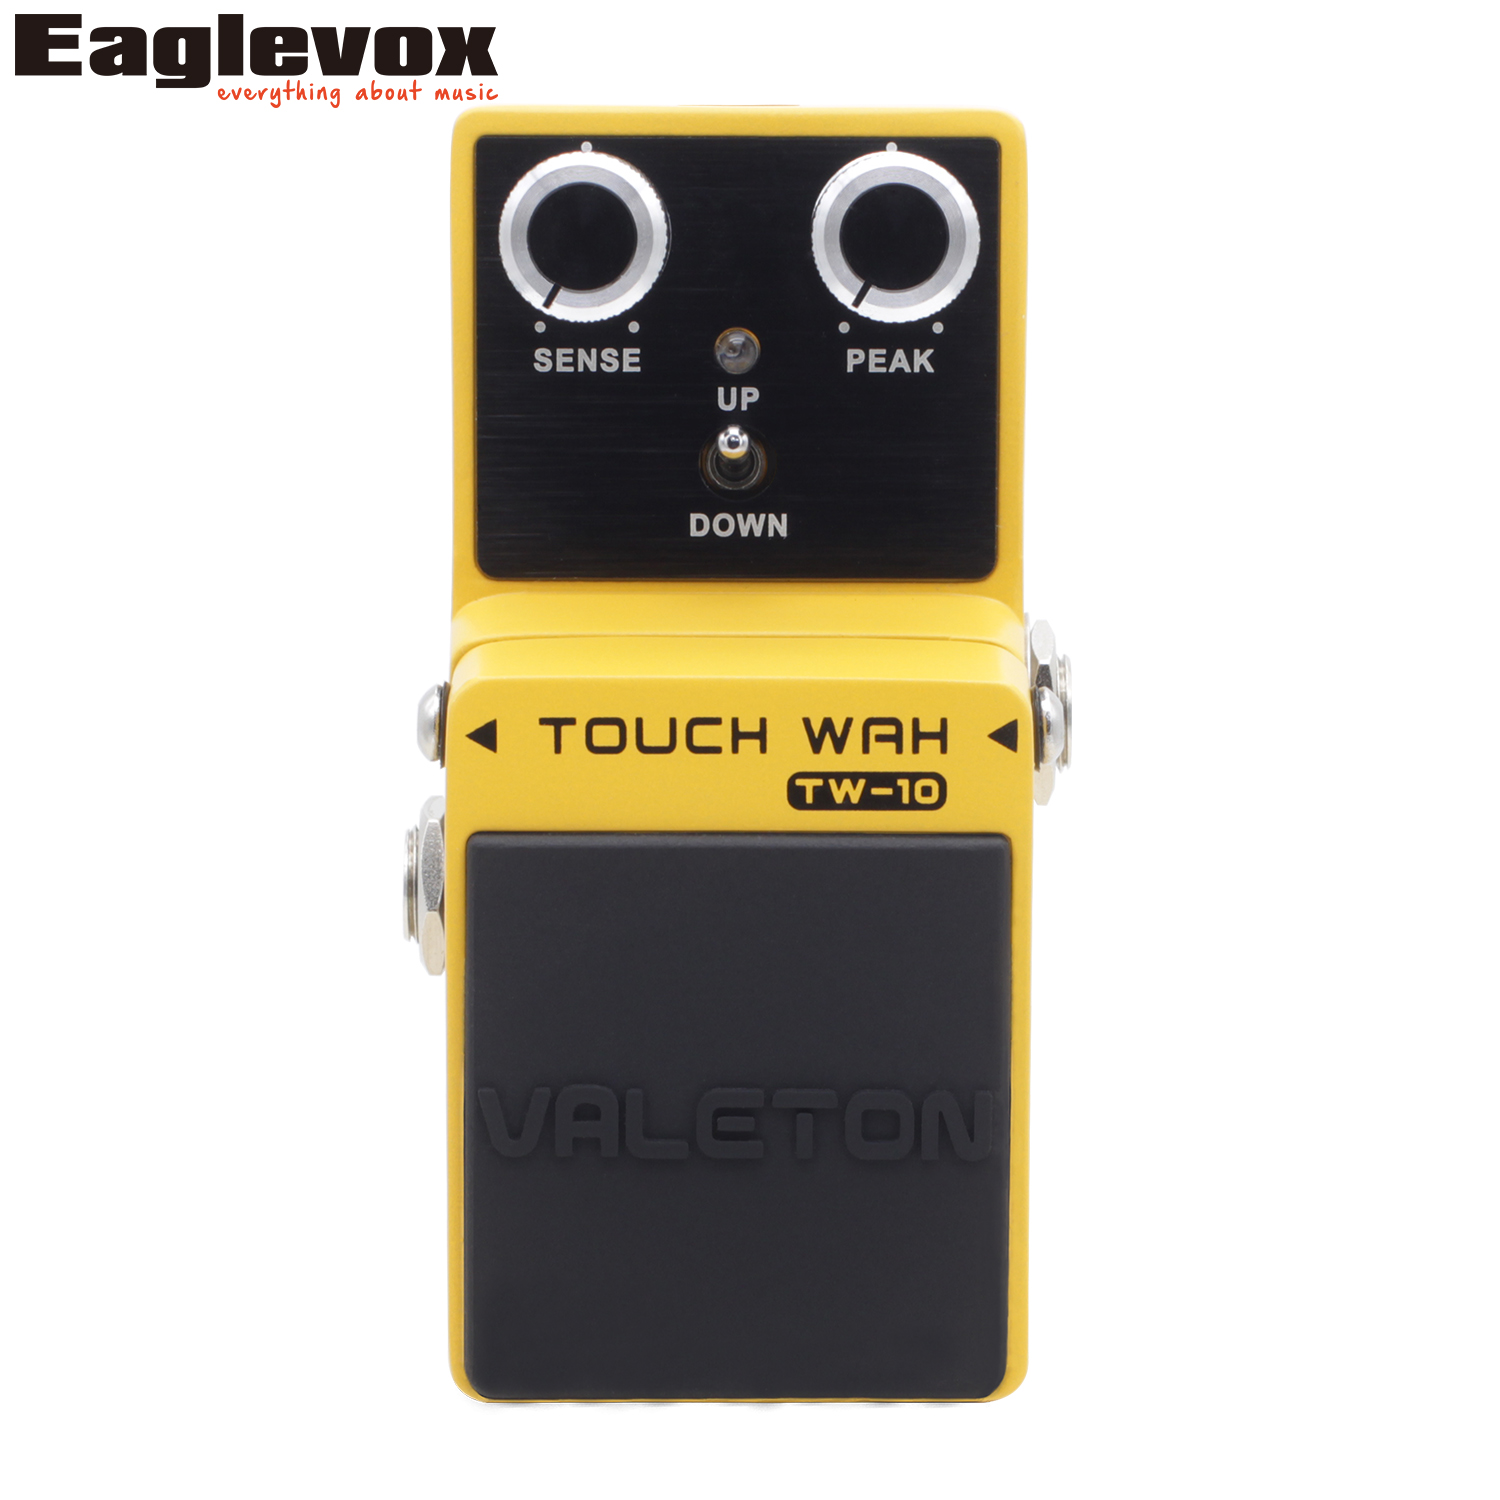 Valeton TW-10 Touch Wah Guitar Effect Pedal Buffer Bypass Analog Auto Wah Effects for Electric Guitar and Bass фридрих шиллер драмы стихотворения